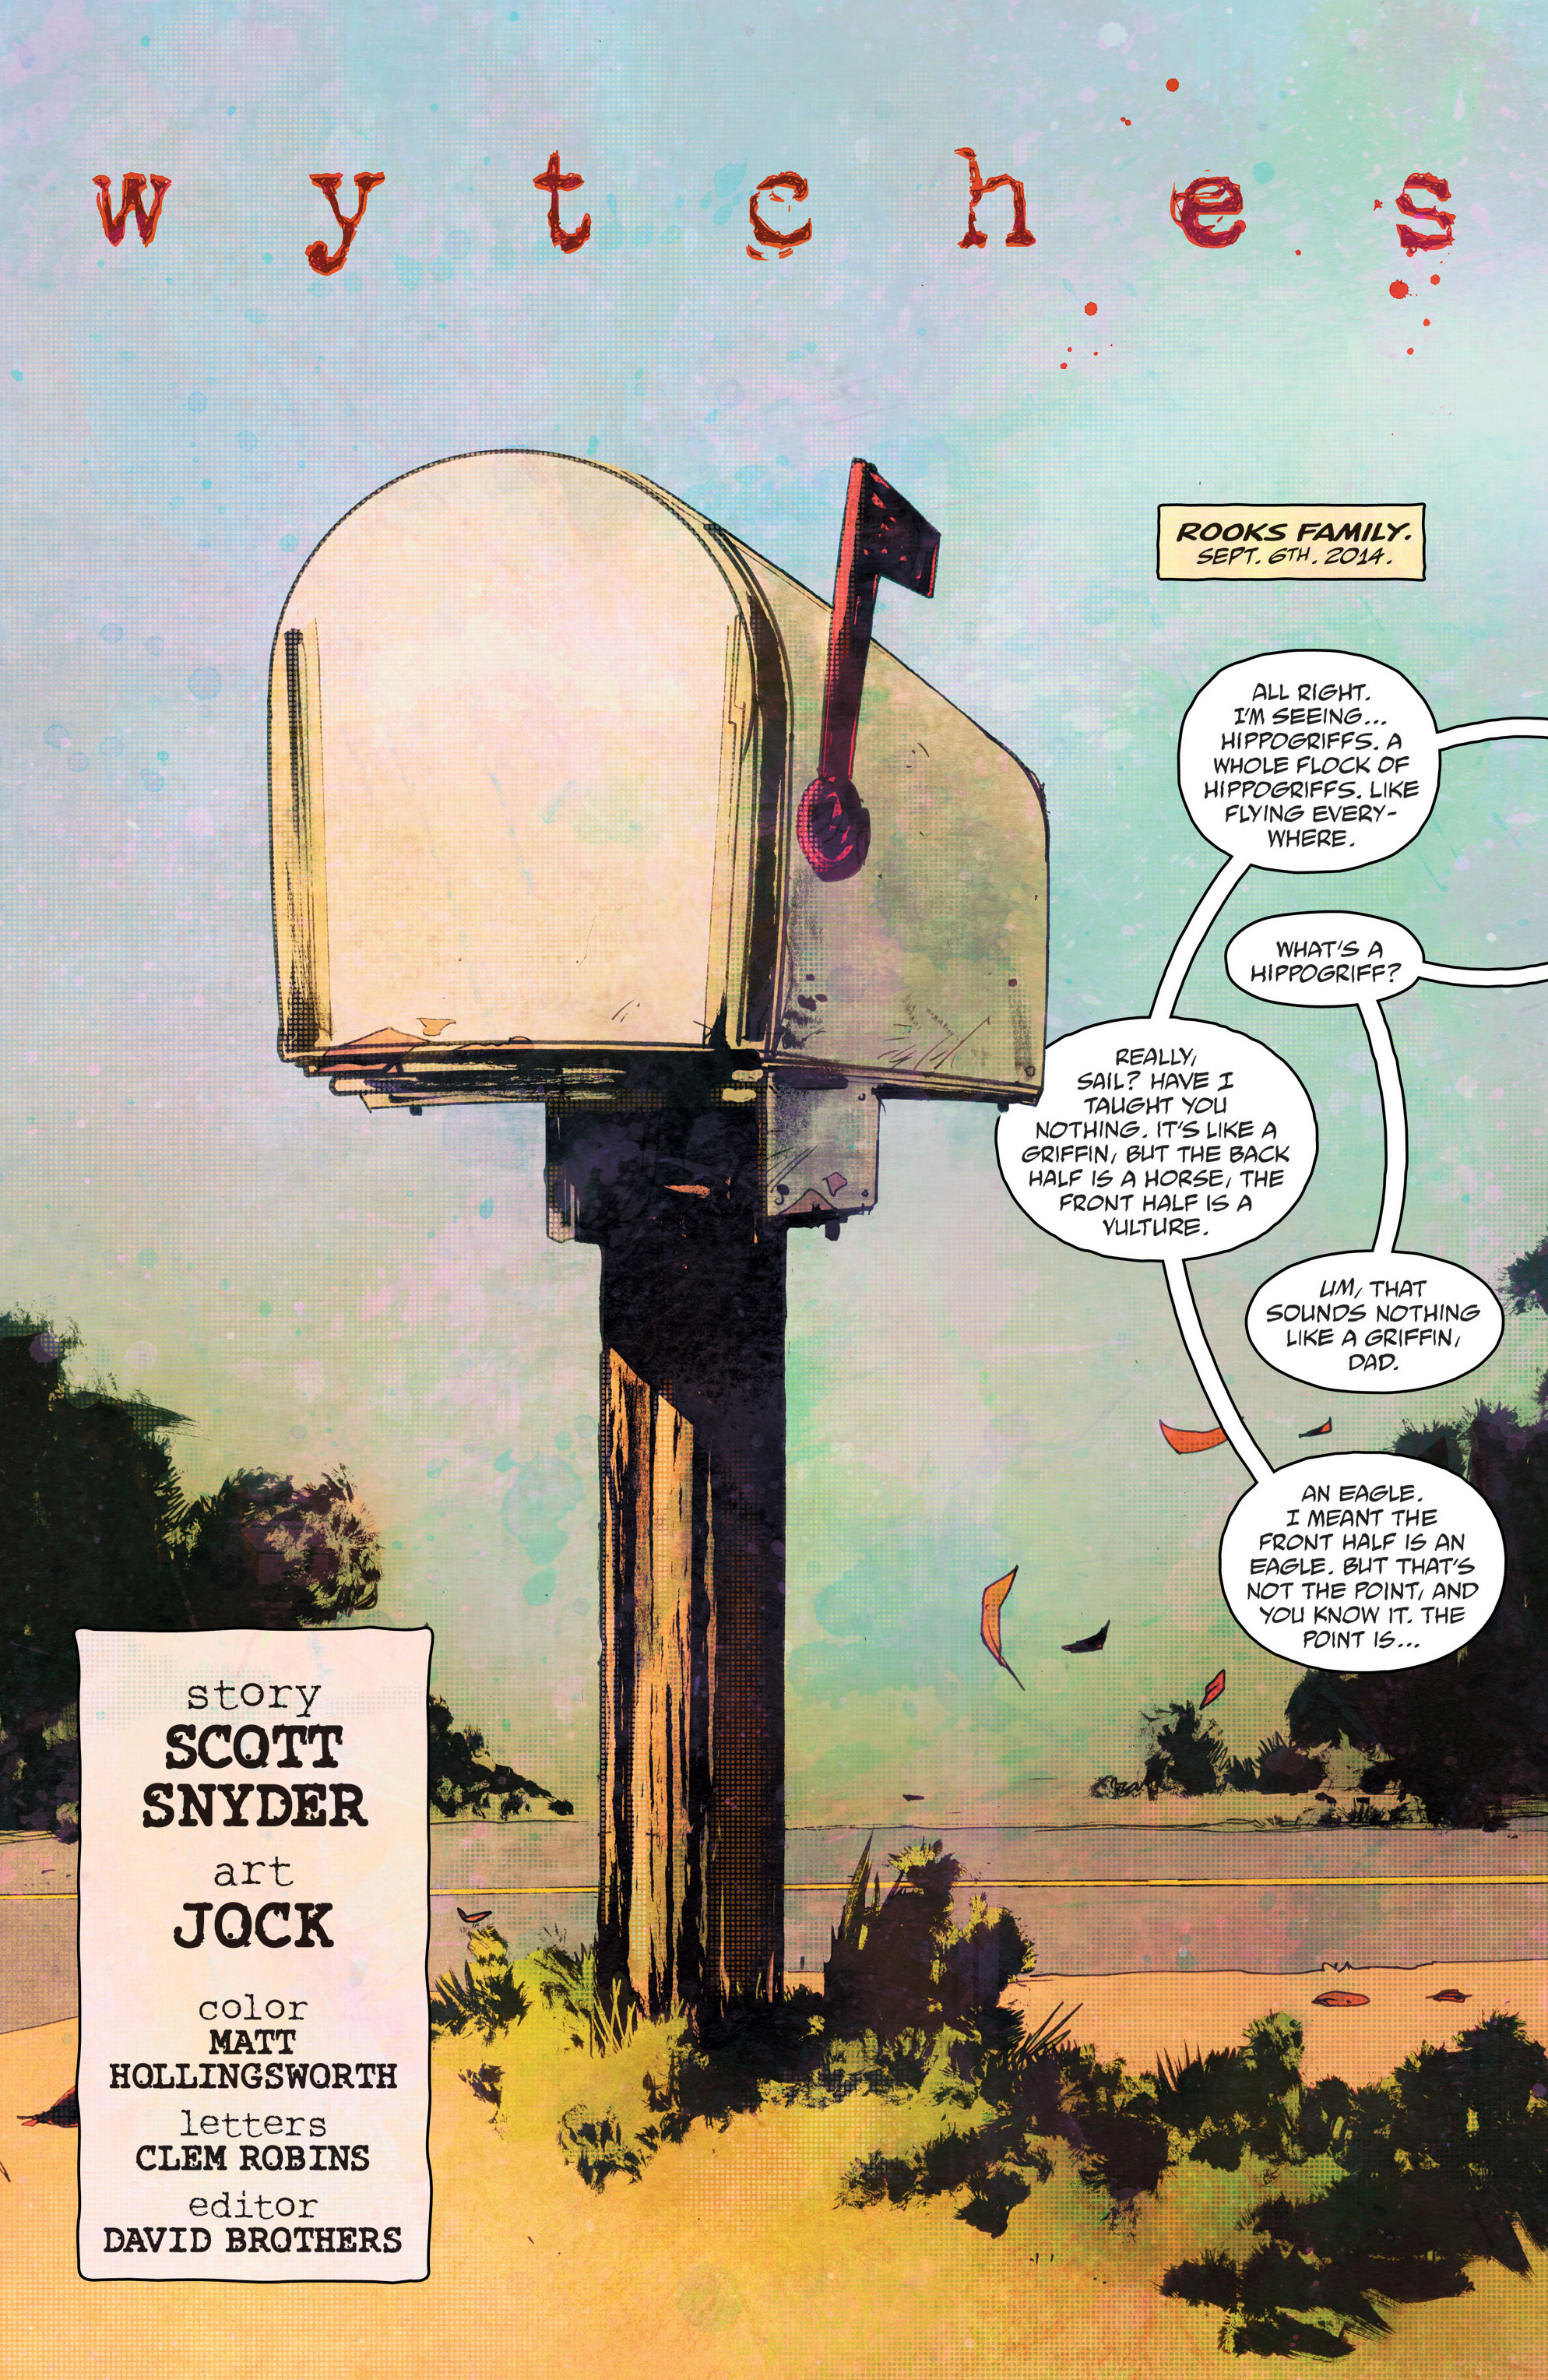 Read online Wytches comic -  Issue #1 - 8